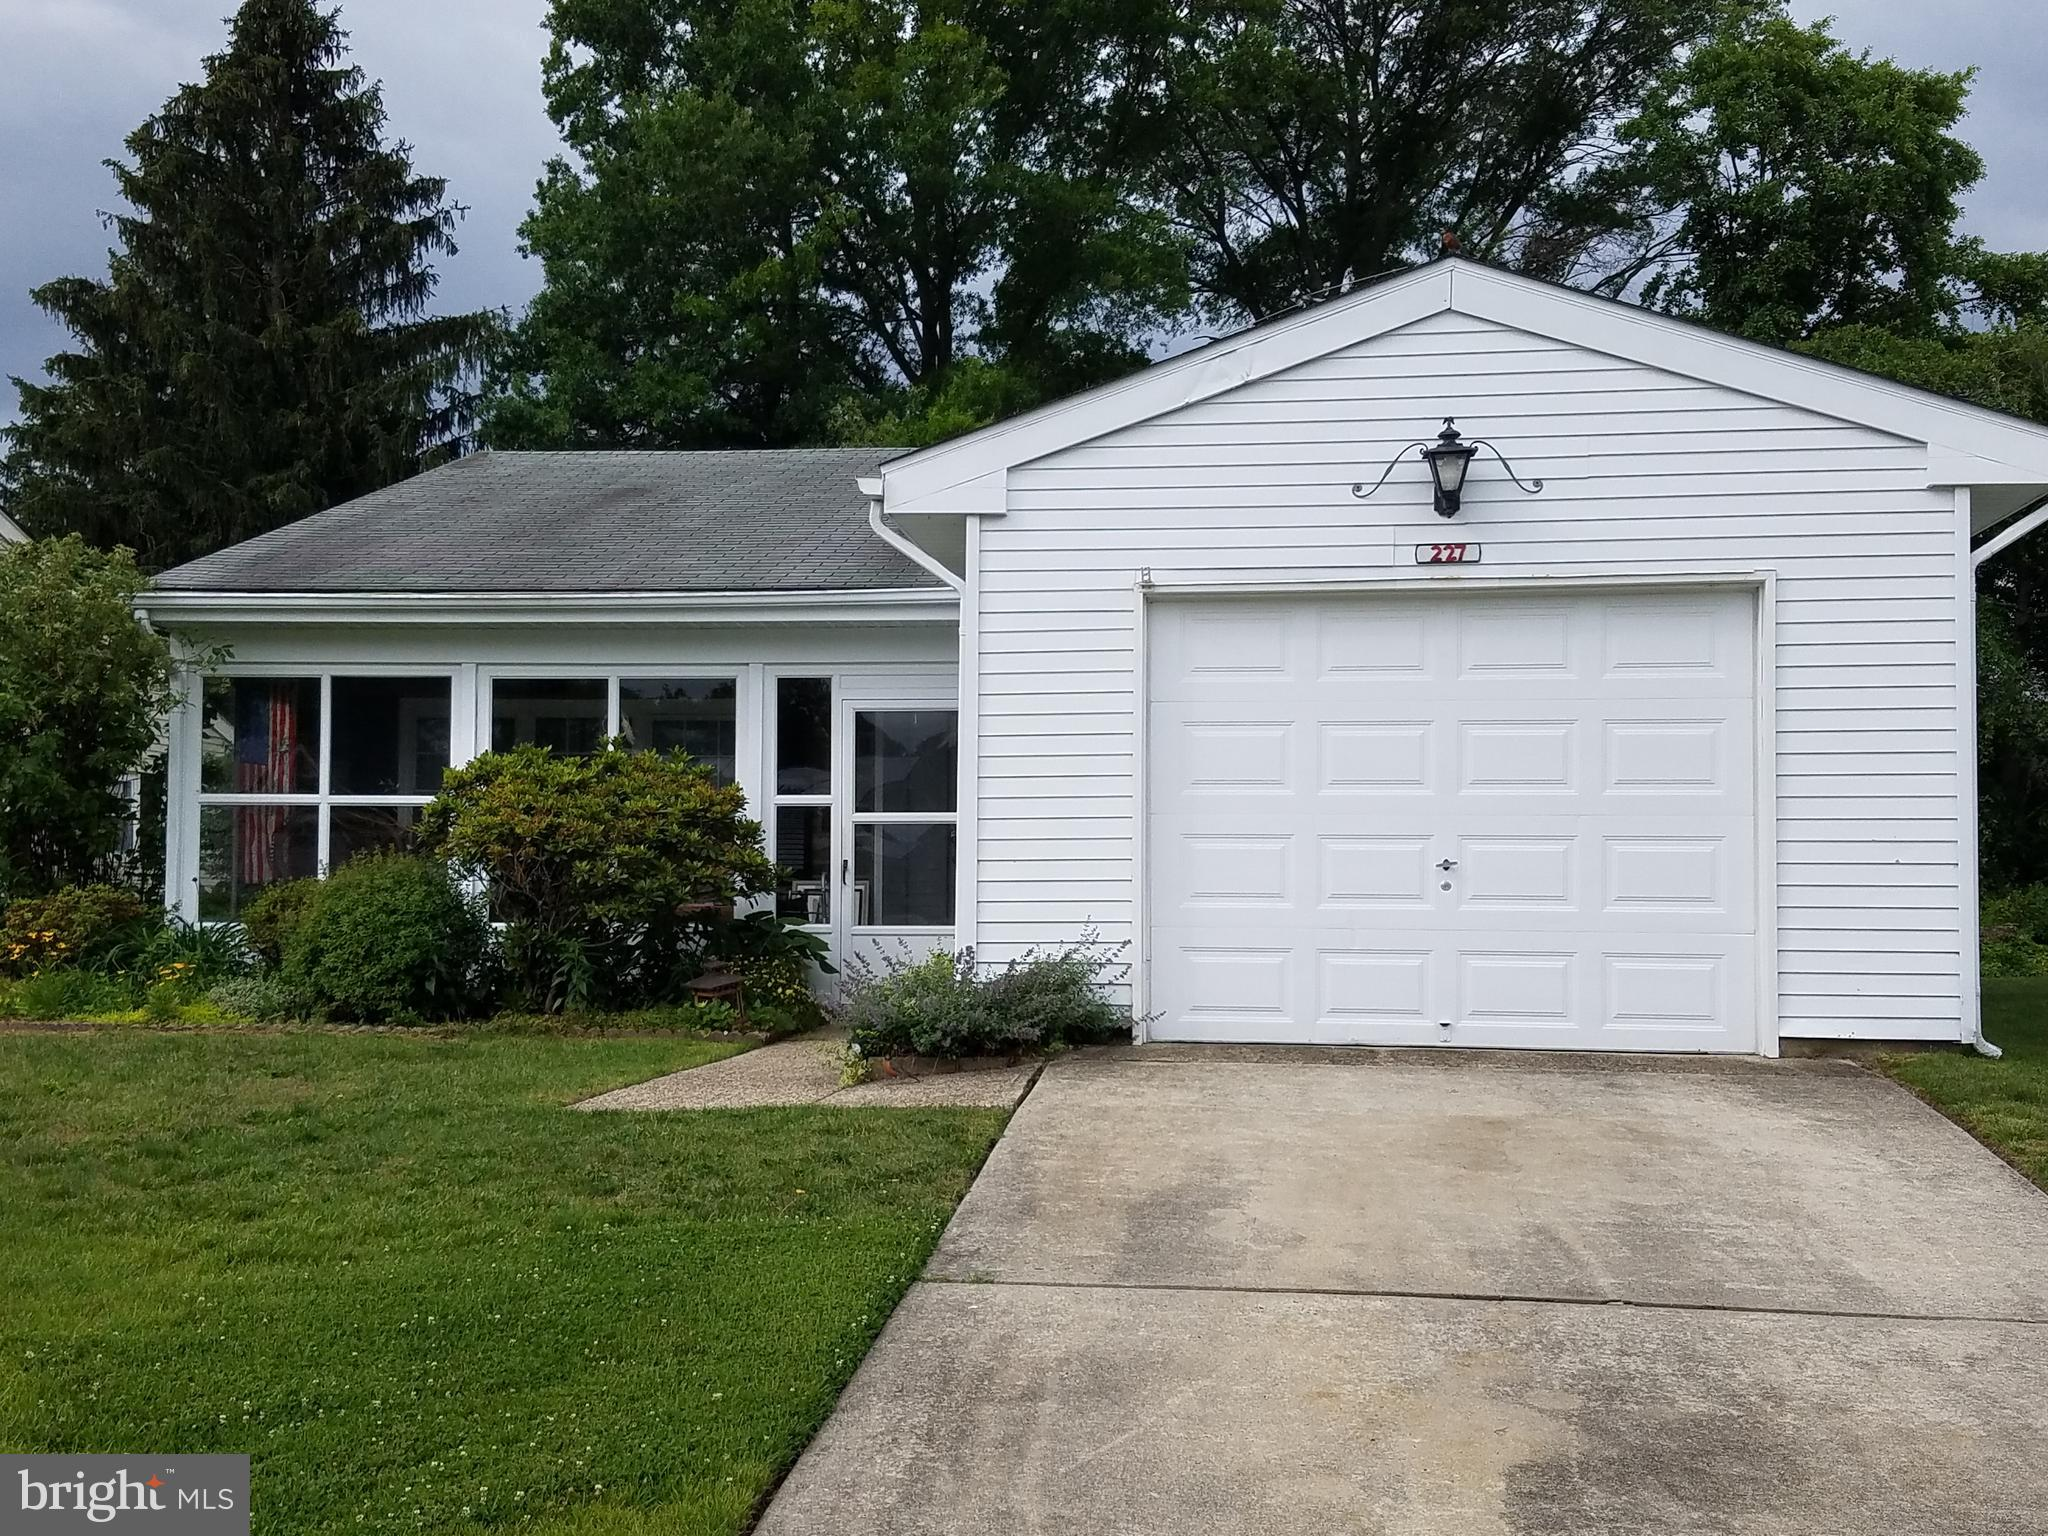 Welcome to this popular Gladwyne model. 2 Bedroom, 1 1/2 Bathroom with Sun room/den.  Enter enclosed front porch to carpeted living room and protected access to garage. Kitchen is updated with laminate flooring and cabinets. Walk thru dining area to Sun room/den . The back yard is private lined with trees and large patio. No need to use baseboard heating with upgraded heat/AC ex-changer installed in 2016. The Laurel Hall clubhouse, heated pool and lake is one block away. Very convenient. Leisuretowne has many amenities for your active life style. 2 Pools and clubhouses with libraries and meeting rooms. Lakes, tennis courts, putting green, driving range, bocce, shuffle board, bus transportation, clubs, and exercise/weight room. 24/7 security. Seller to provide at closing a HSA One year Home Warranty for your peace of mind.